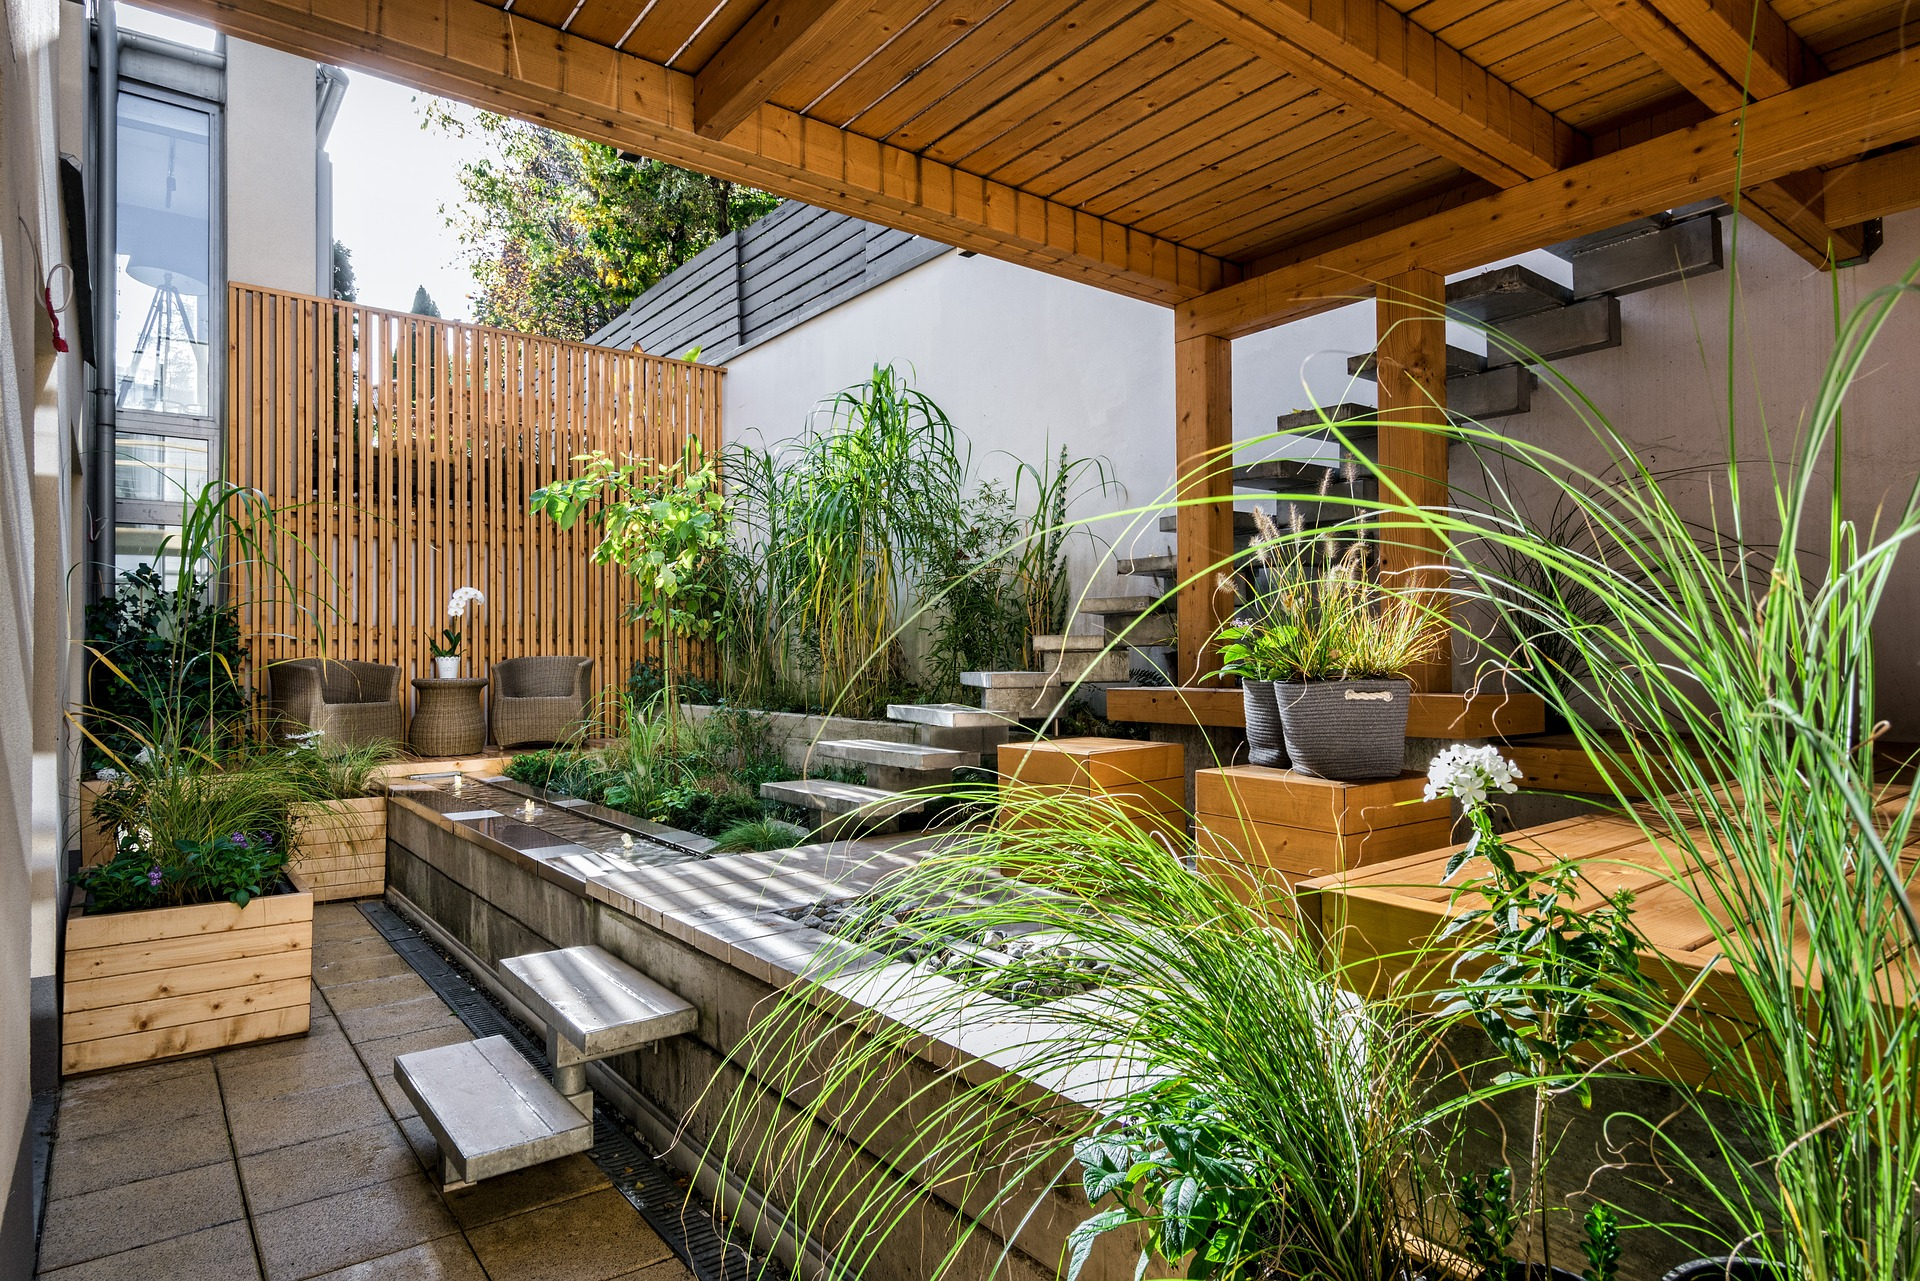 4 Ways to Turn Your Backyard into a True Zen Oasis